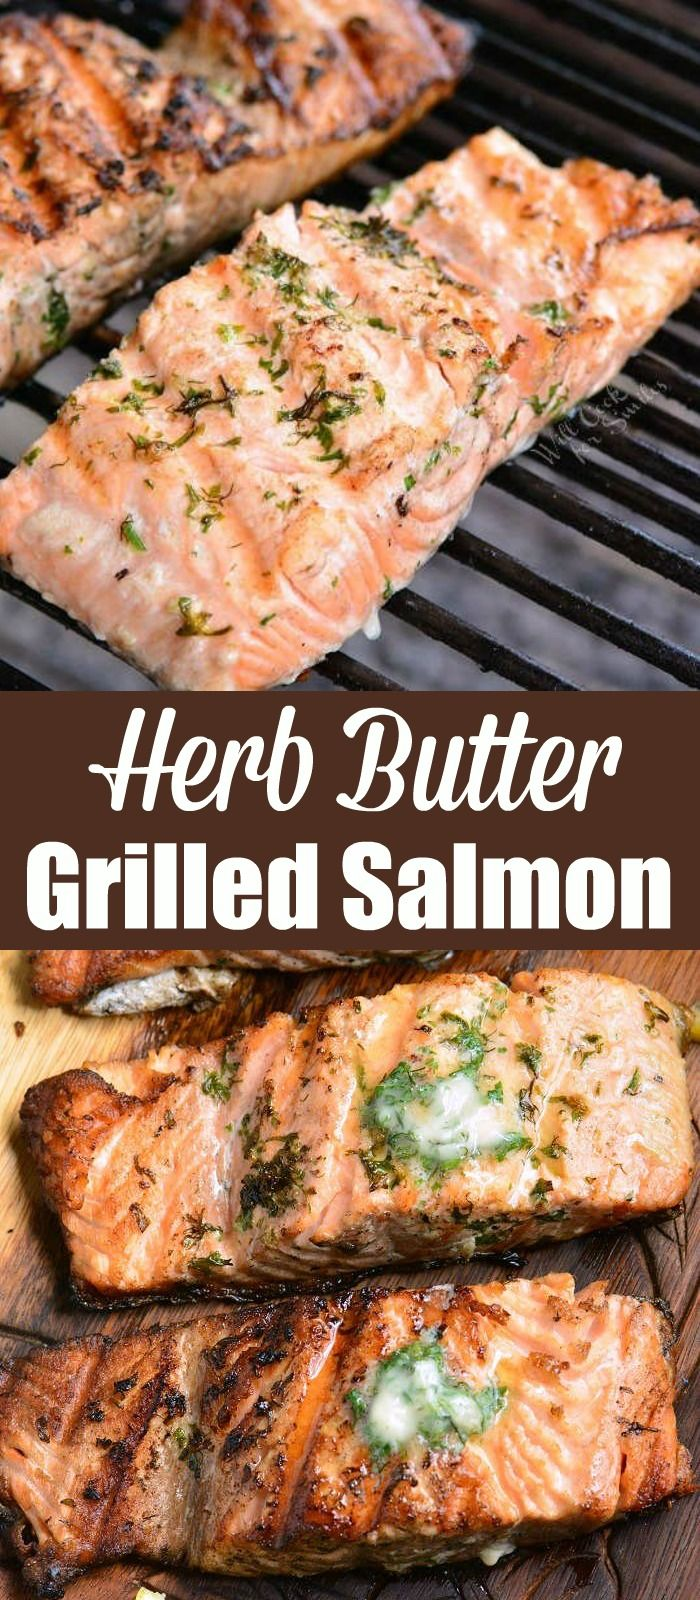 Herb Butter Grilled Salmon